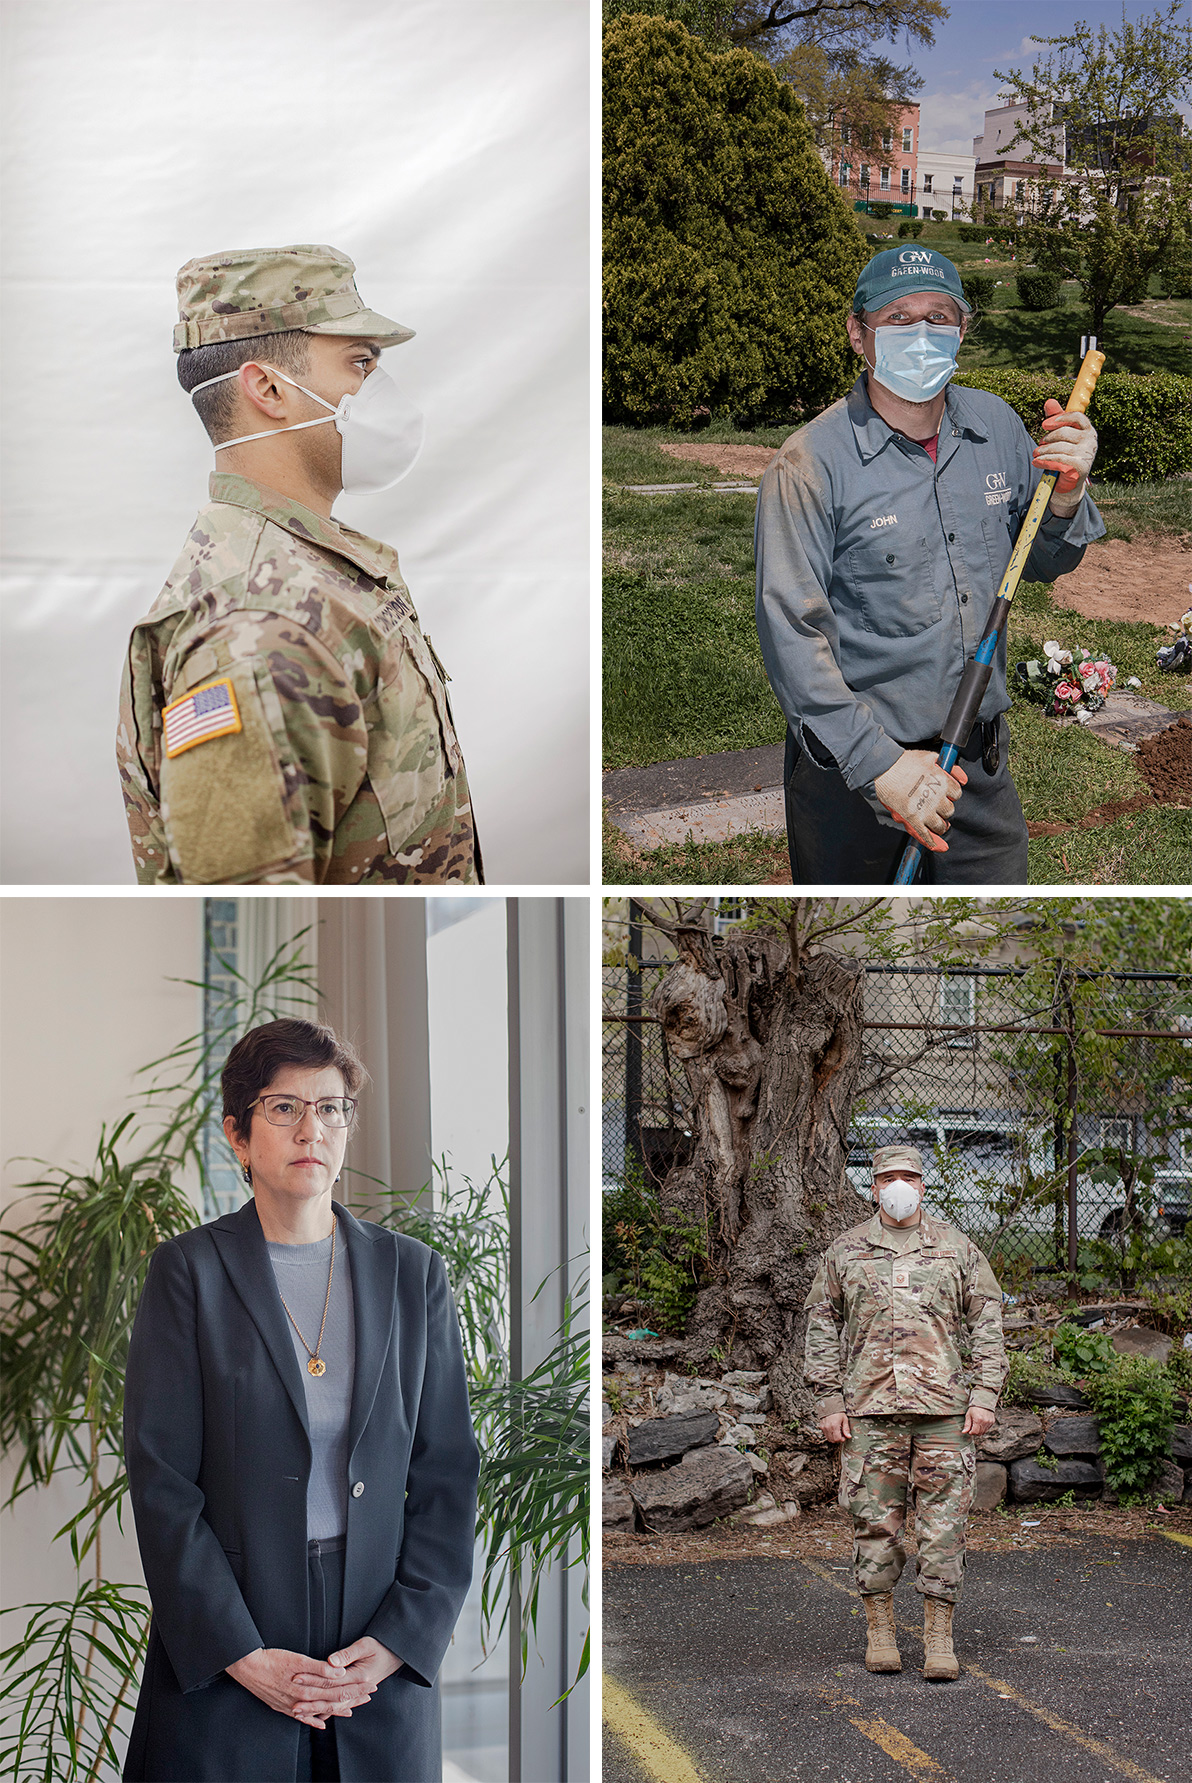 Clockwise from top-left: Jonathan Concepcion, Private First Class; Janusz Karkos, Green-Wood Cemetery Gravedigger; Ramon Jones, Master Sergeant; Barbara Sampson, Chief Medical Examiner